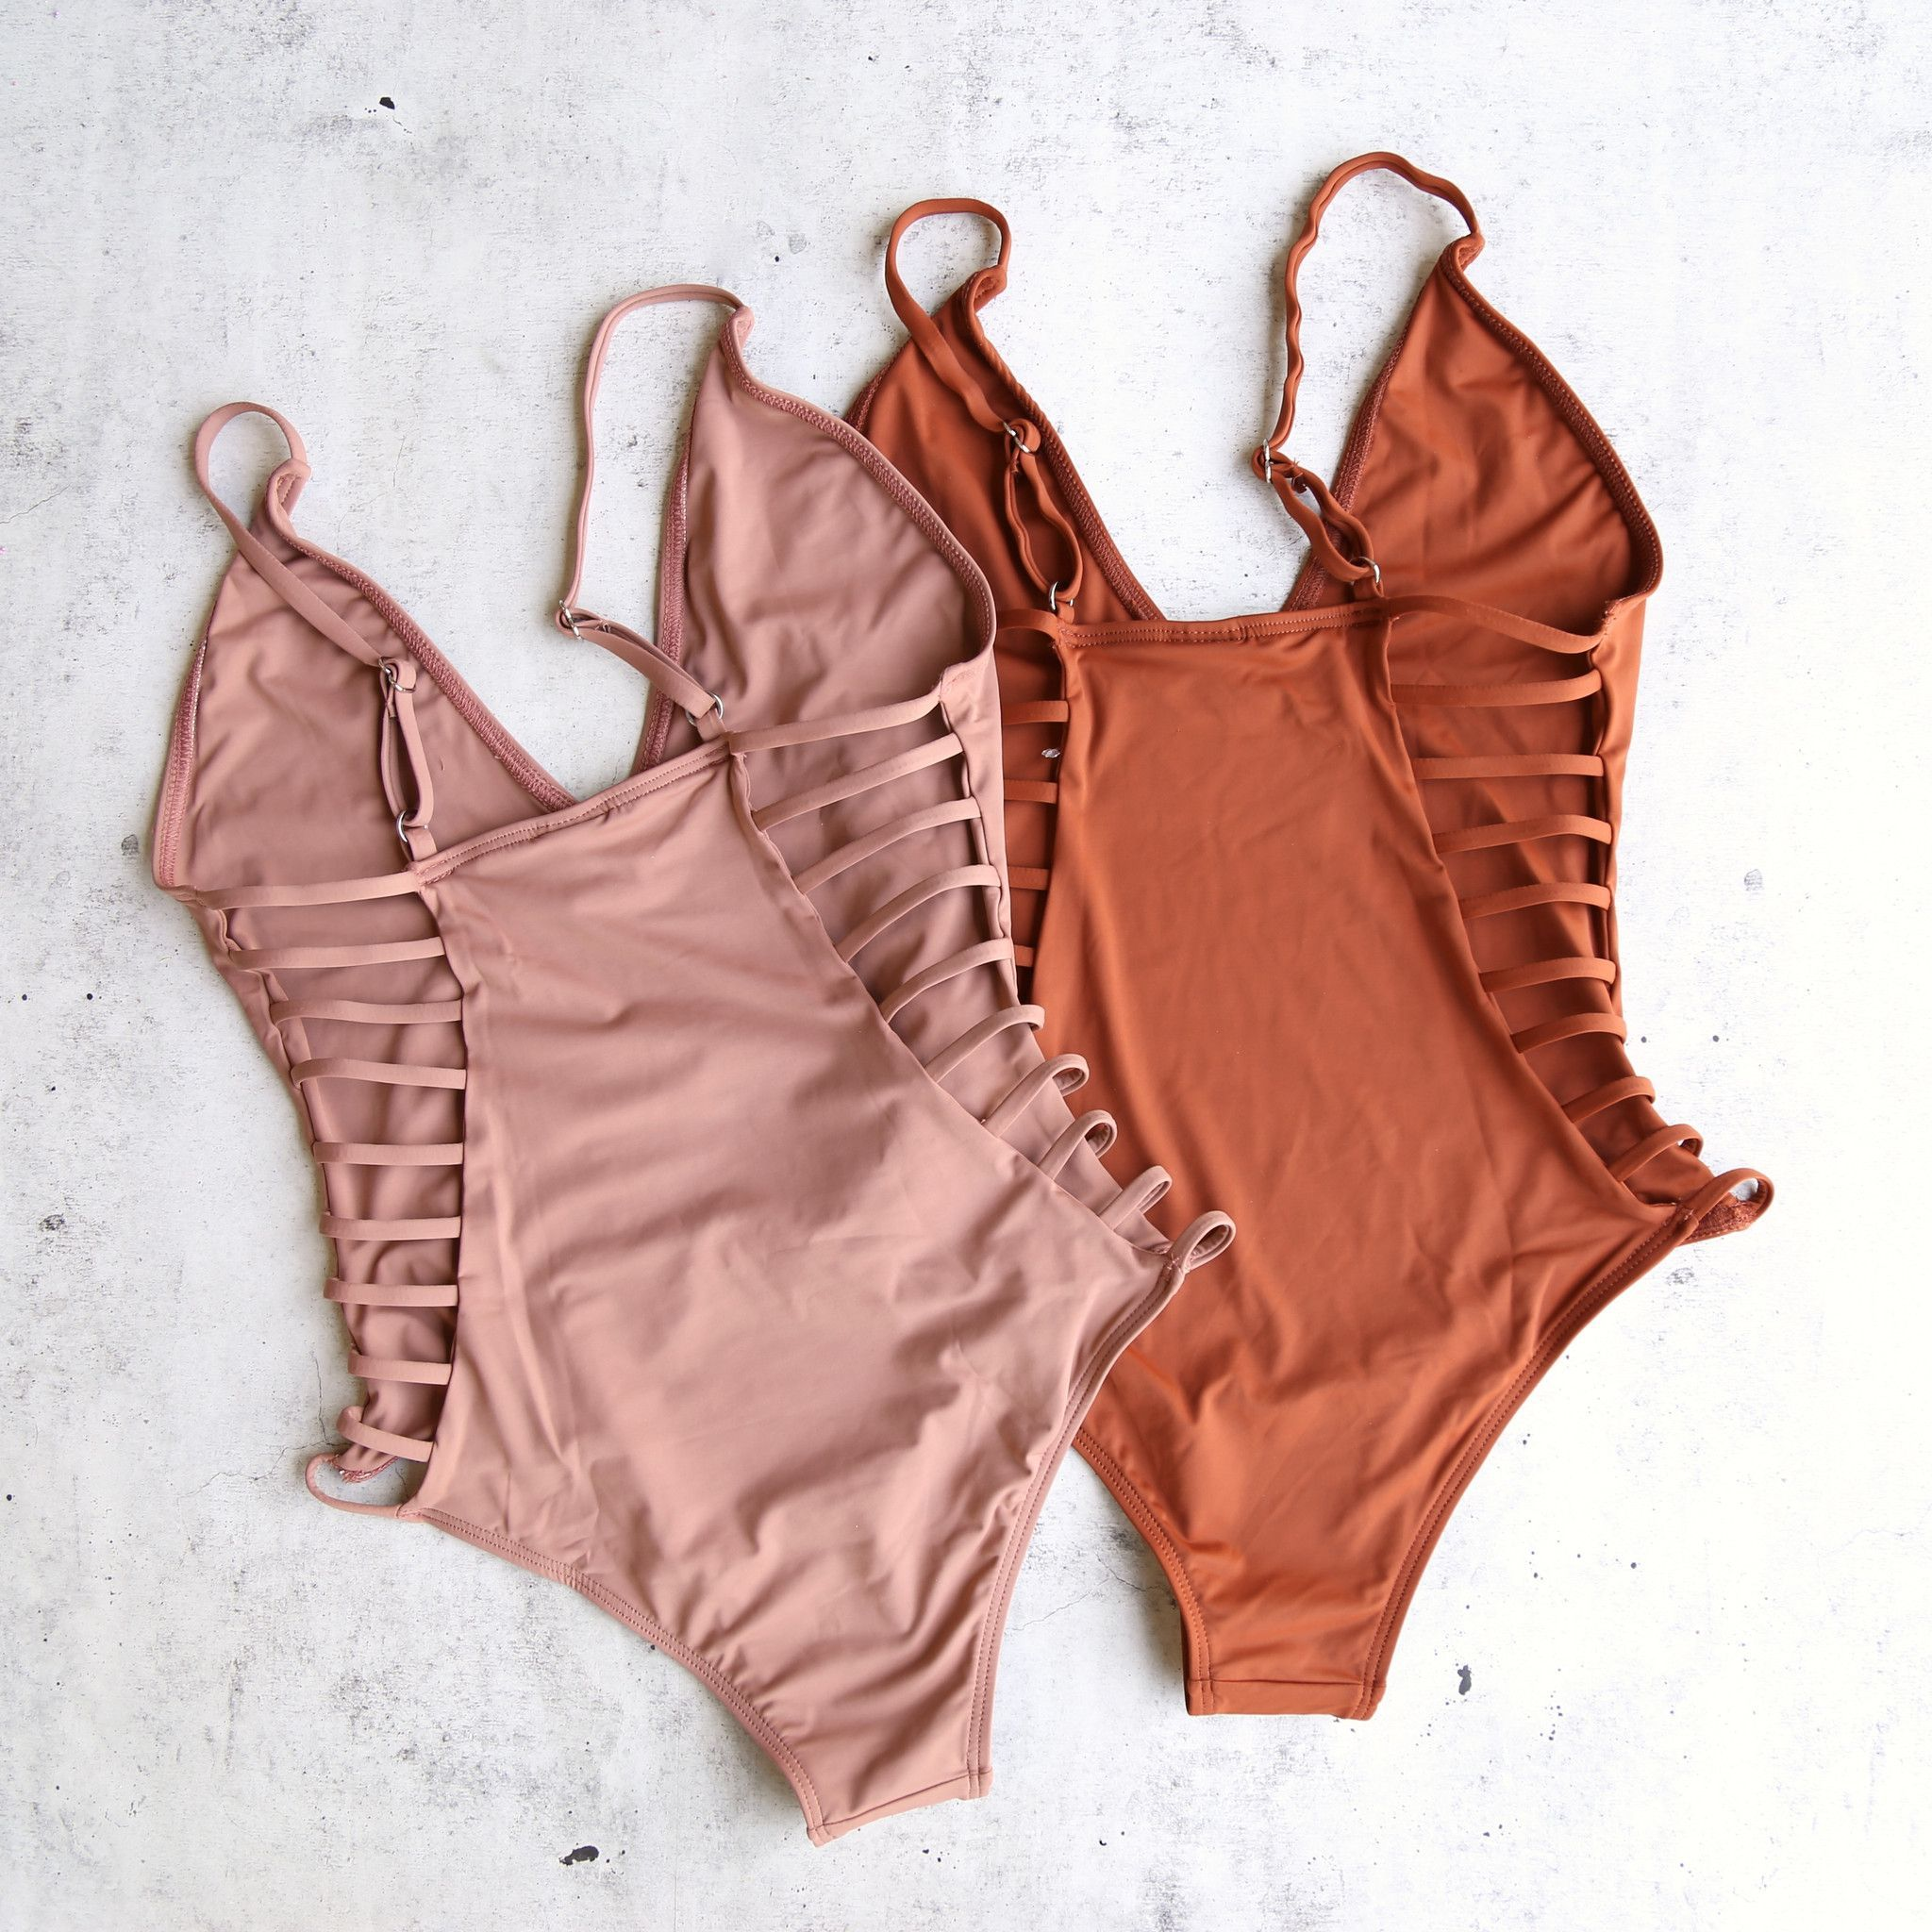 strappy back one piece - more colors   Ropa interior   Pinterest ...